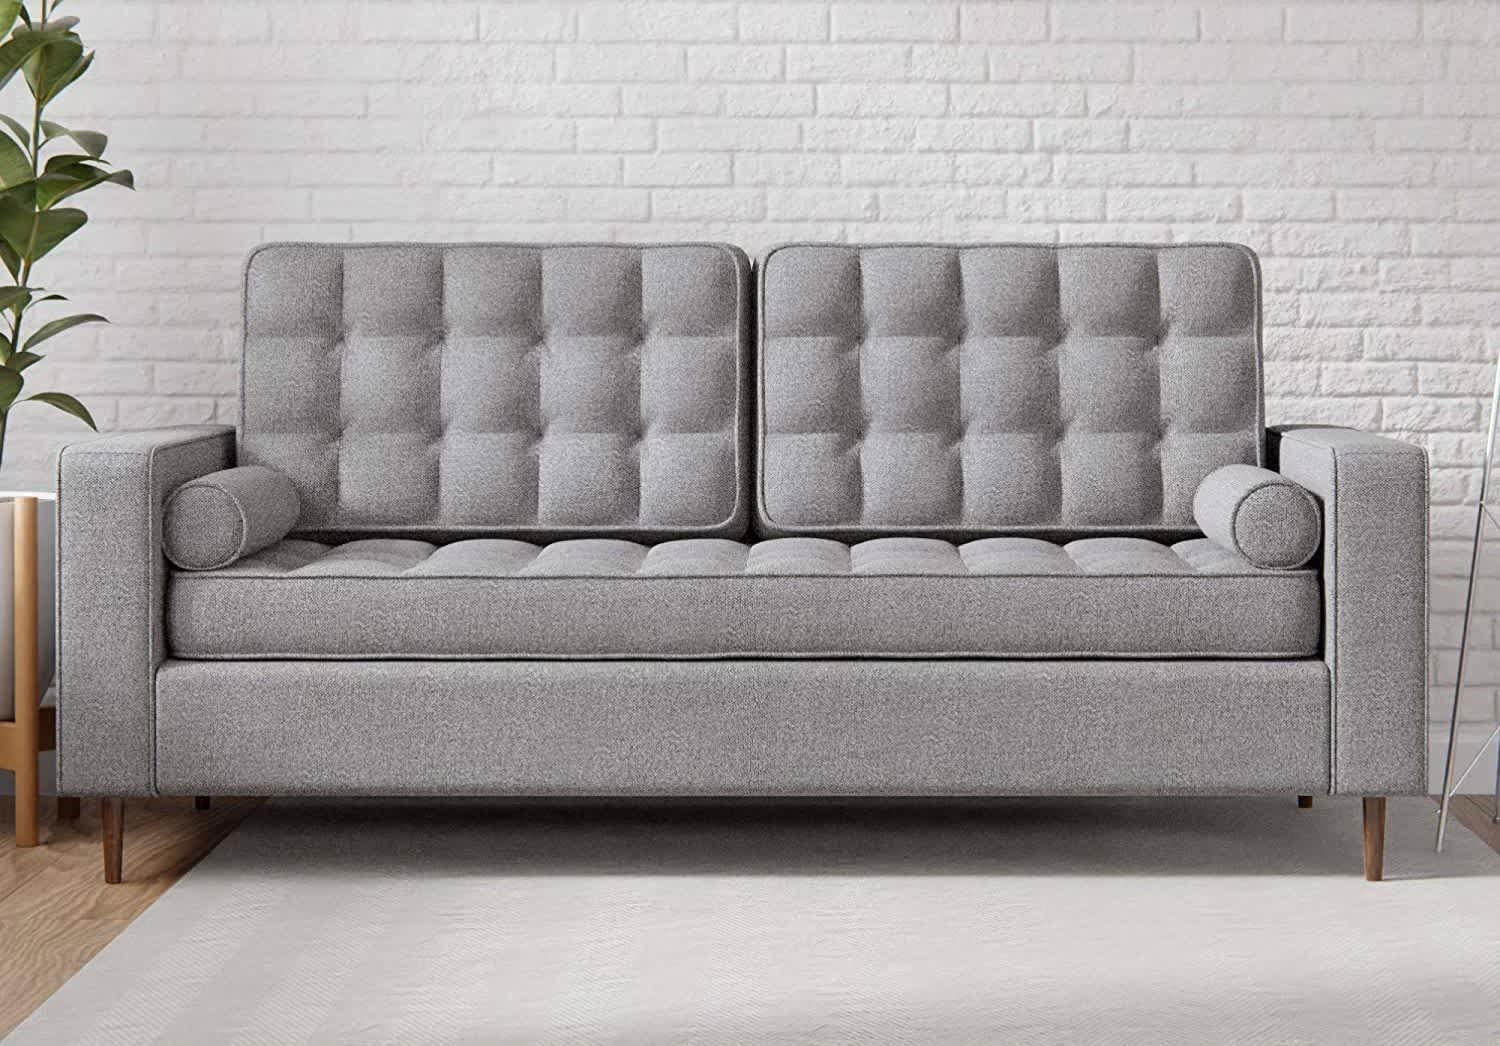 Everlane Home Lynnwood Upholstered Tufted Sofa